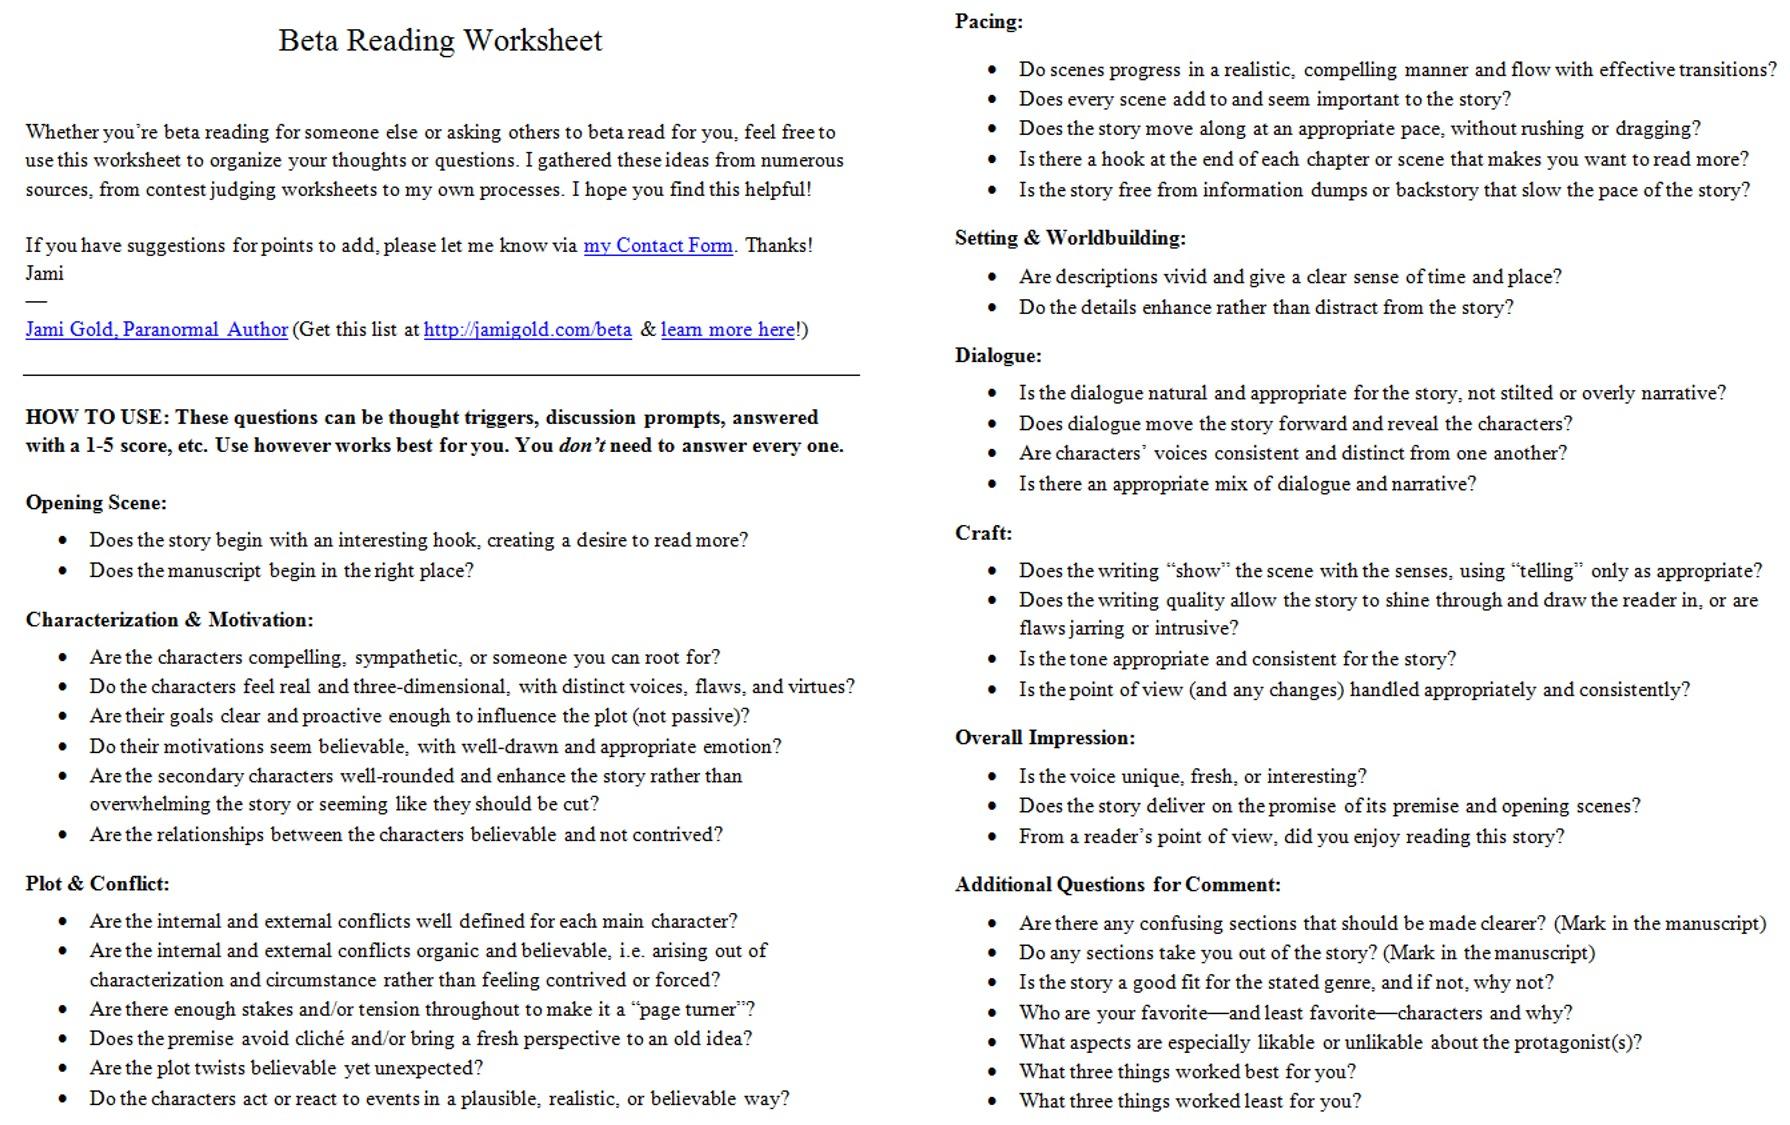 Proatmealus  Picturesque Worksheets For Writers  Jami Gold Paranormal Author With Exquisite Screen Shot Of The Twopage Beta Reading Worksheet With Captivating Conflict Worksheet Also Verify Trig Identities Worksheet In Addition Past Participle Worksheet And Volume Word Problems Worksheets As Well As Irs W Worksheet Additionally Fraction Addition And Subtraction Worksheet From Jamigoldcom With Proatmealus  Exquisite Worksheets For Writers  Jami Gold Paranormal Author With Captivating Screen Shot Of The Twopage Beta Reading Worksheet And Picturesque Conflict Worksheet Also Verify Trig Identities Worksheet In Addition Past Participle Worksheet From Jamigoldcom